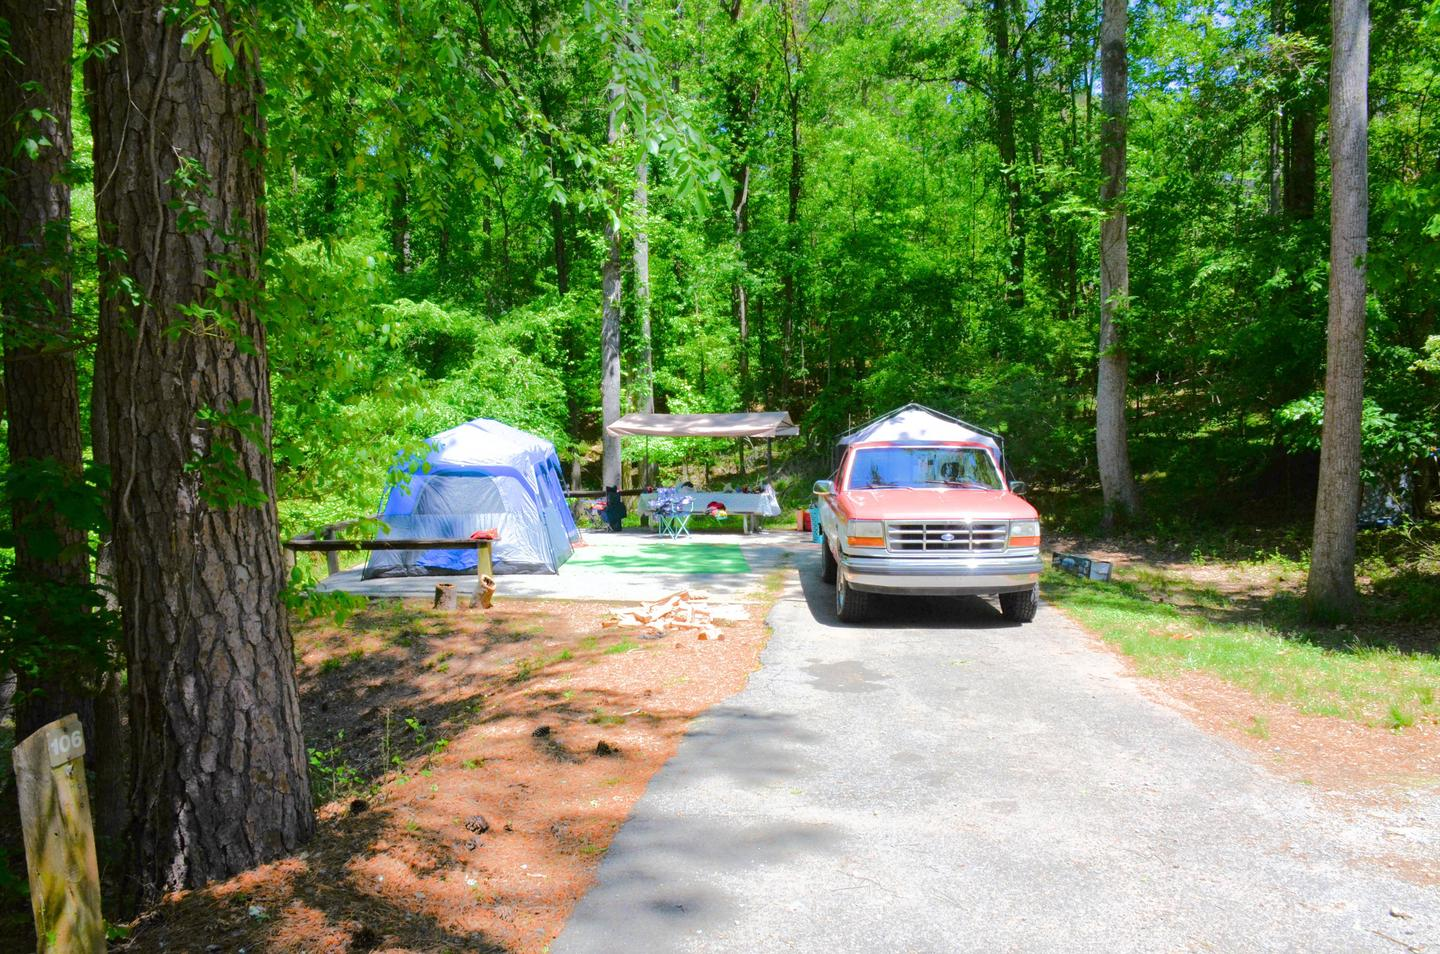 Driveway slope, awning side clearance.McKinney Campground, campsite 104.